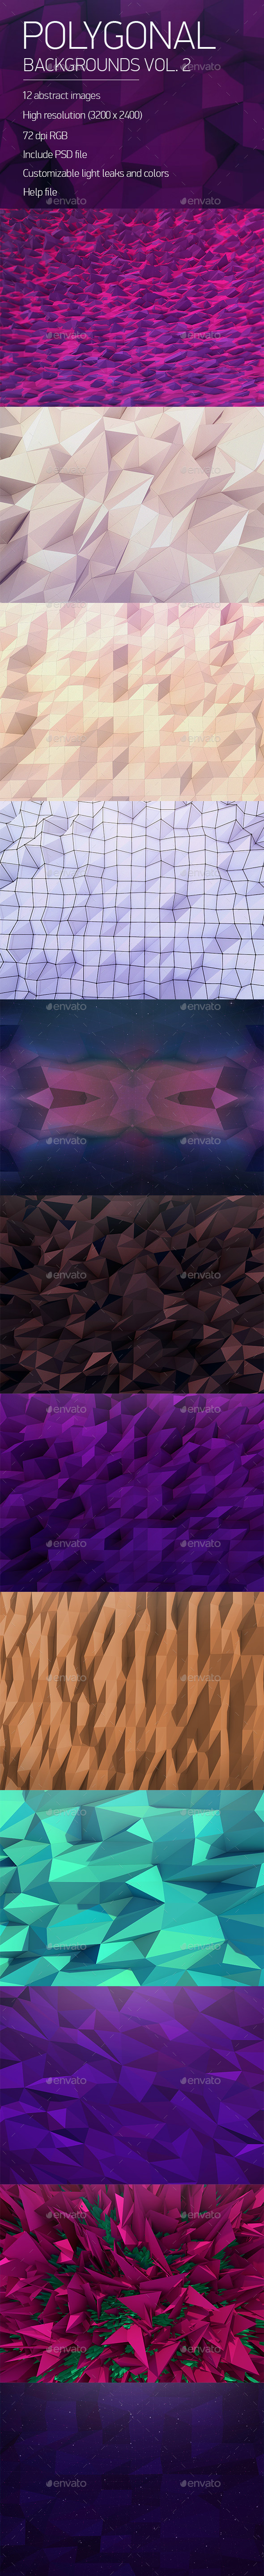 Polygonal Backgrounds Vol. 2 - Backgrounds Graphics